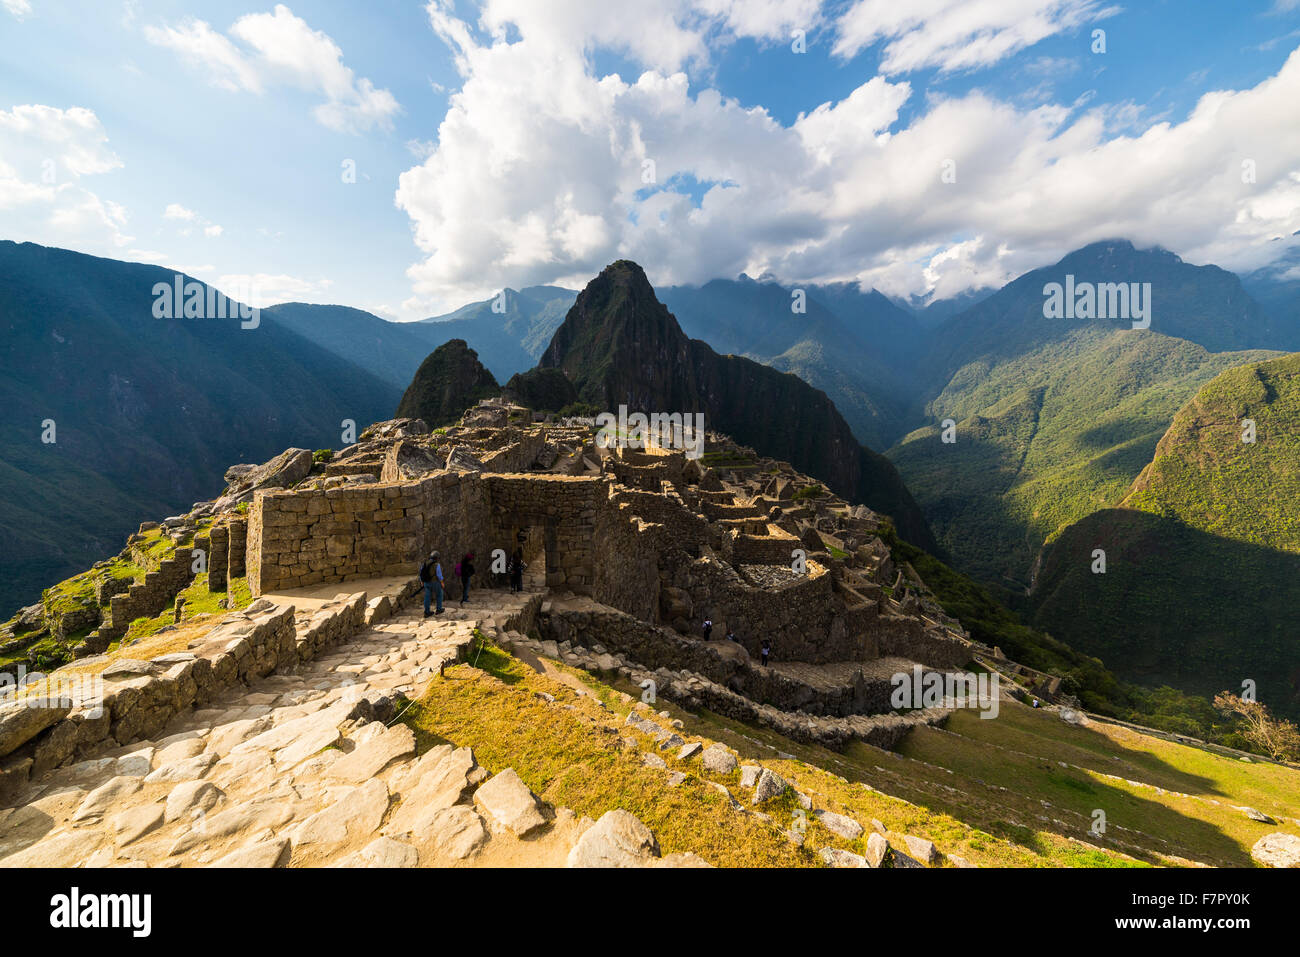 Machu Picchu partially illuminated by the last sunlight. Wide angle view from the terraces with scenic sky and glowing - Stock Image